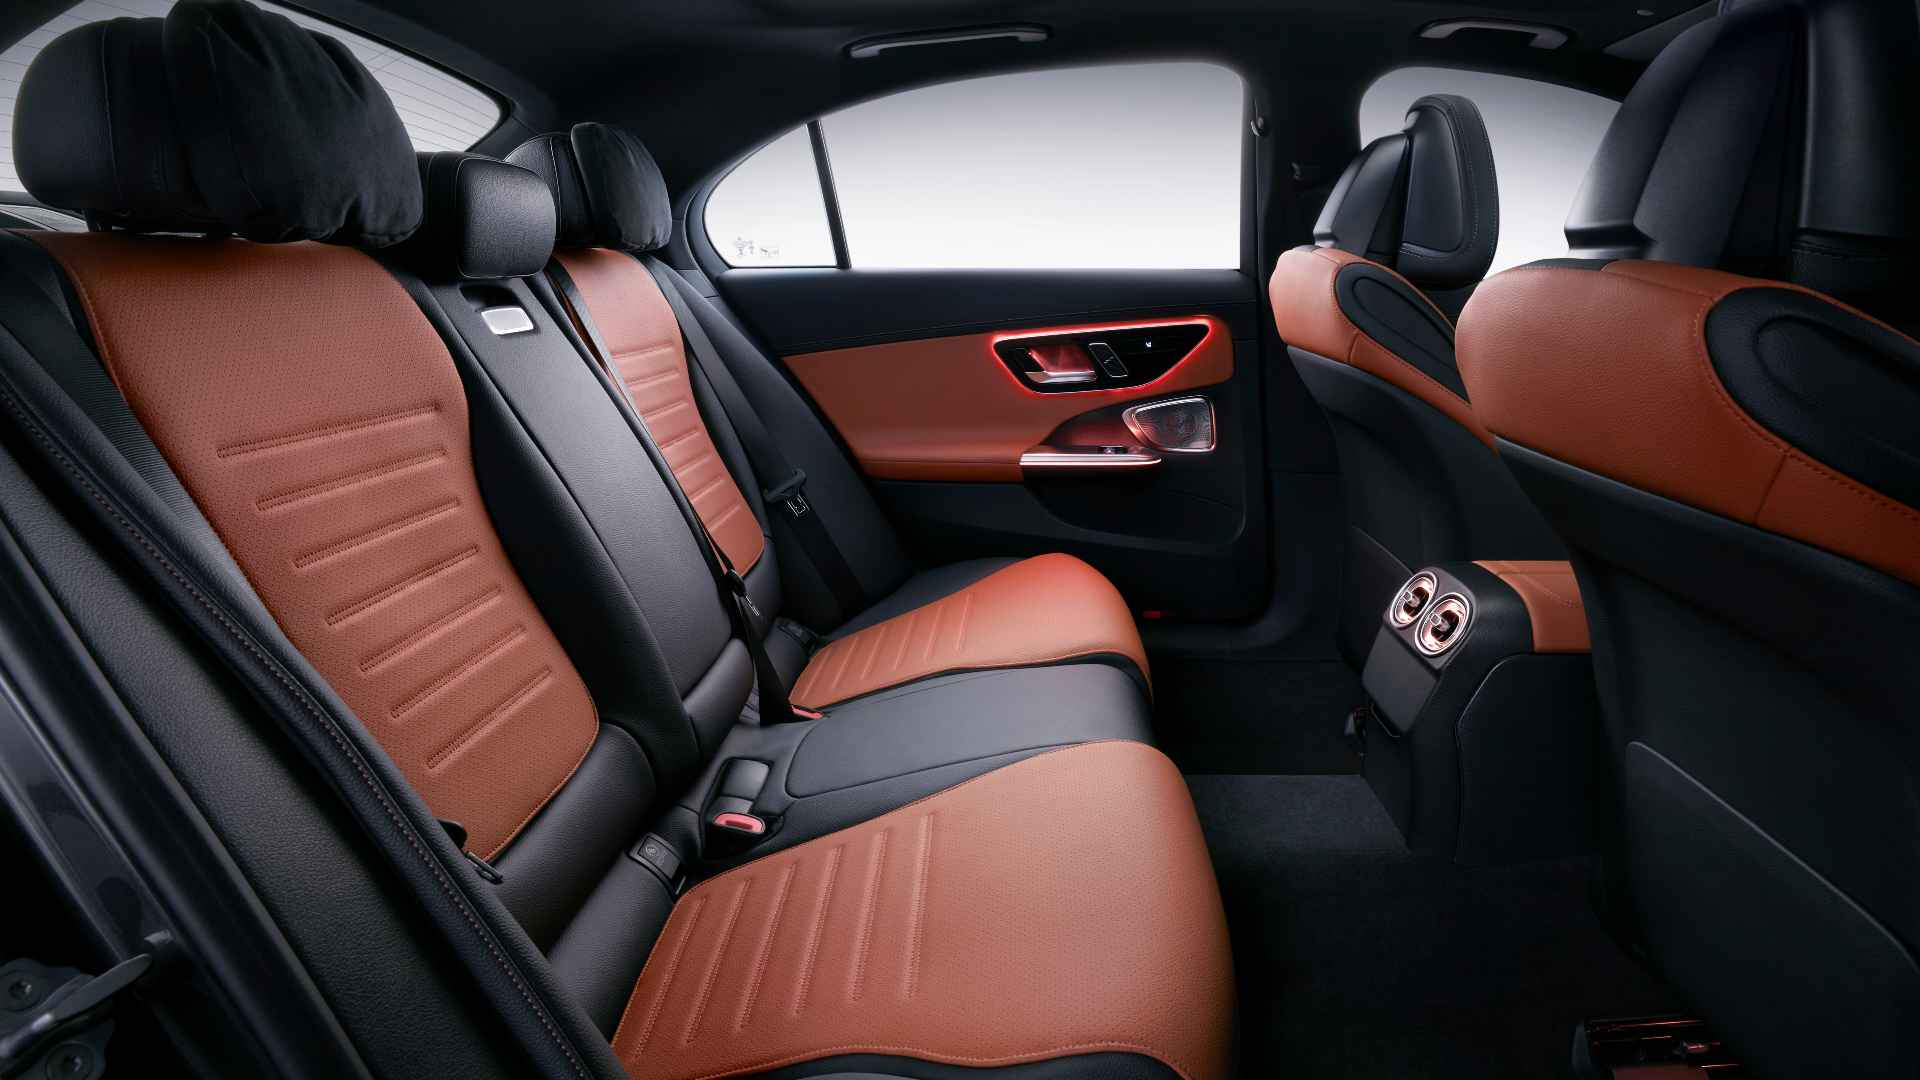 89 mm increase in wheelbase frees up more room for rear seat passengers. Image: Mercedes-Benz